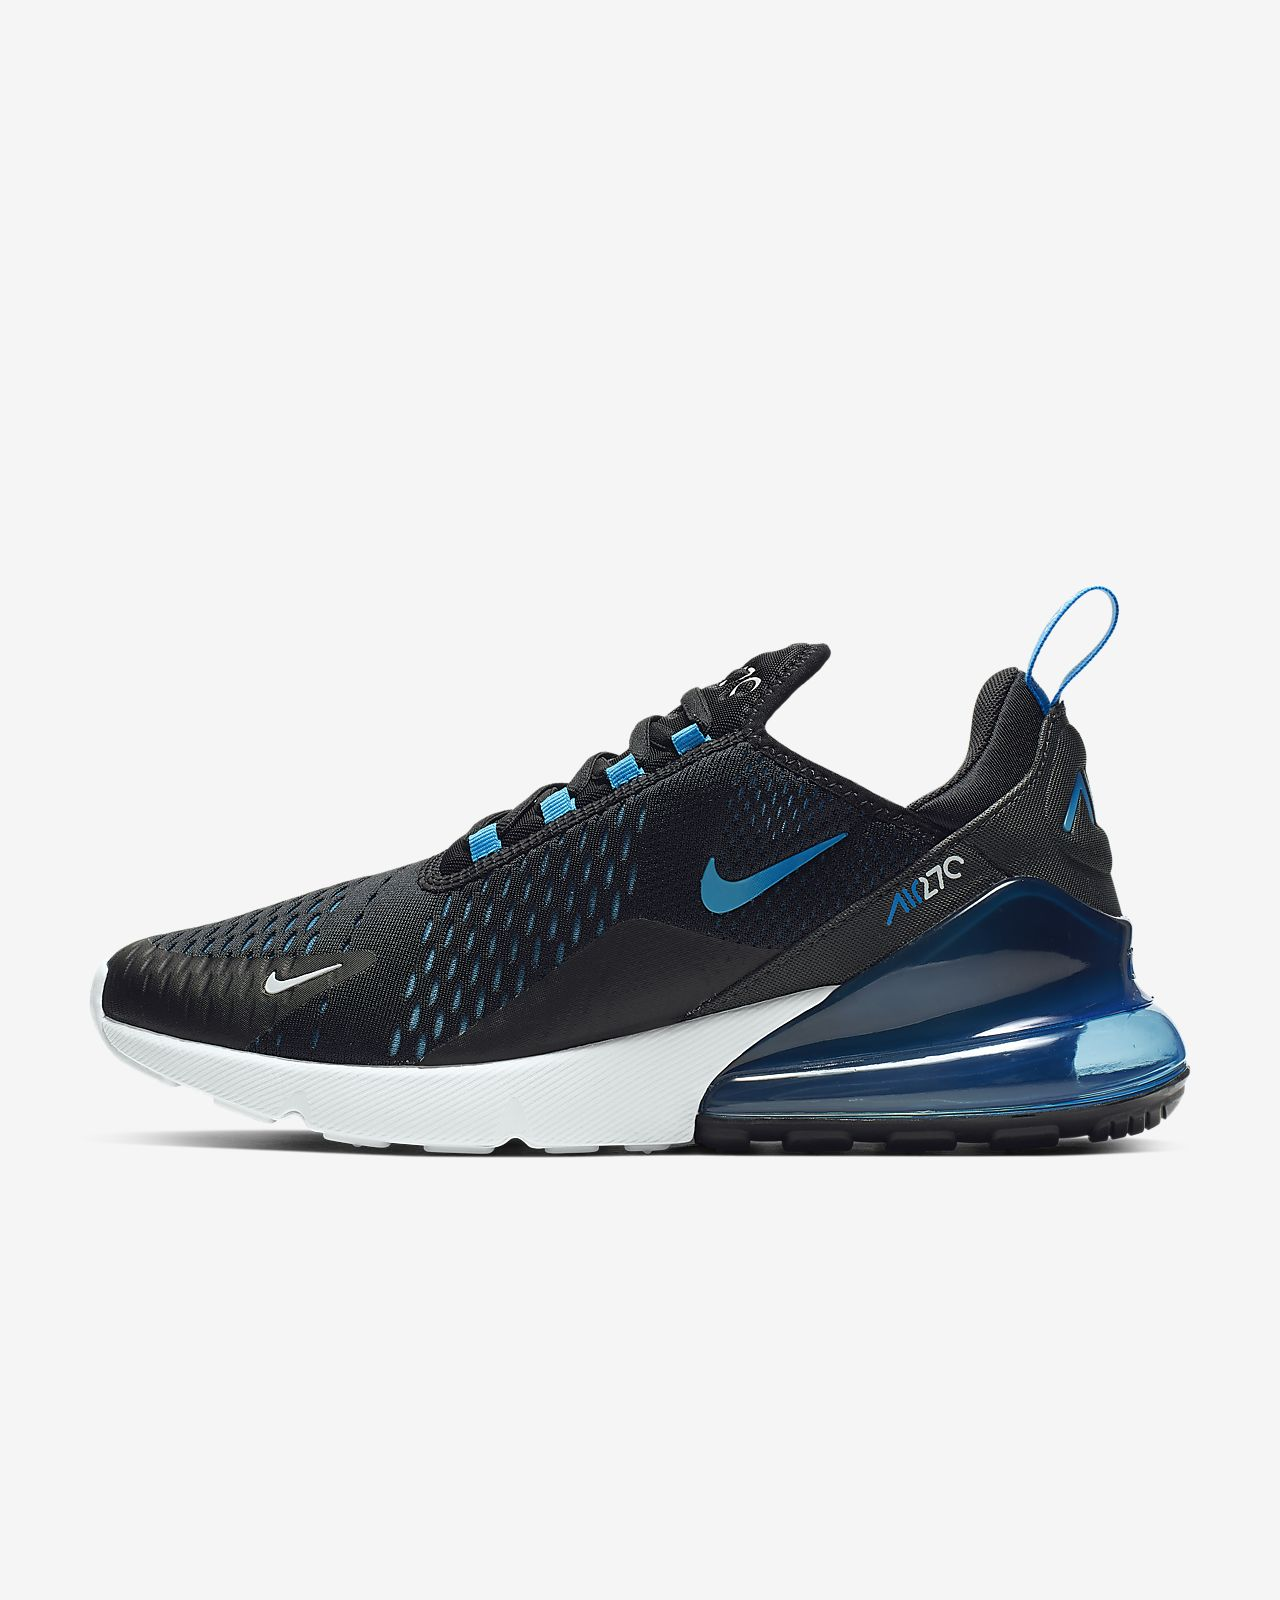 meet 6c81f d6f46 Men s Shoe. Nike Air Max 270